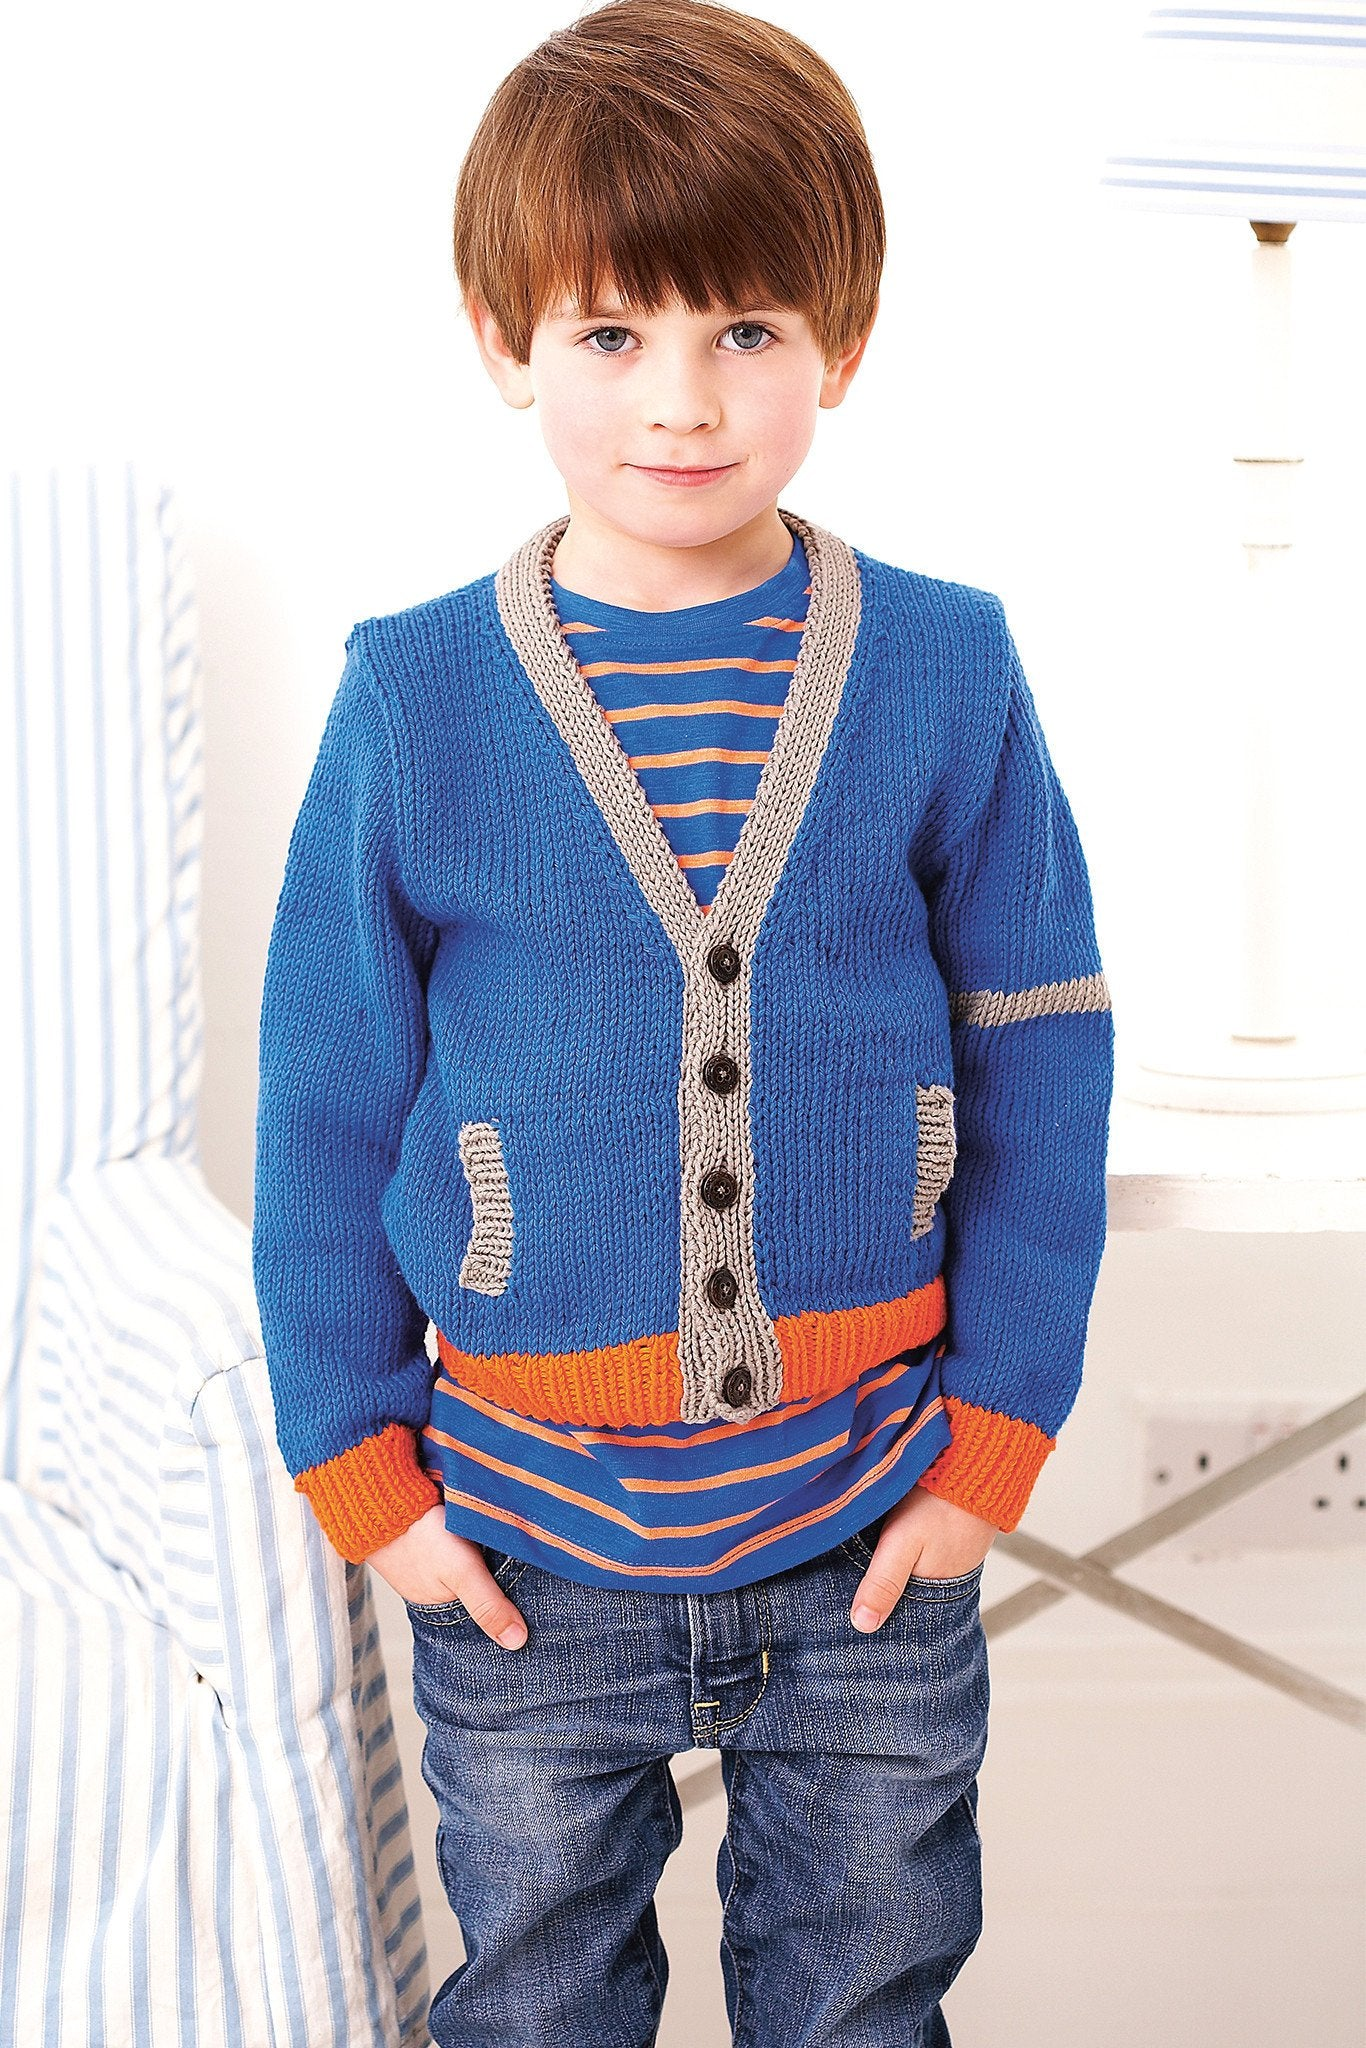 Knitting Pattern For Cardigan With Pockets : Boys Cardigan With Pockets Knitting Pattern   The Knitting Network